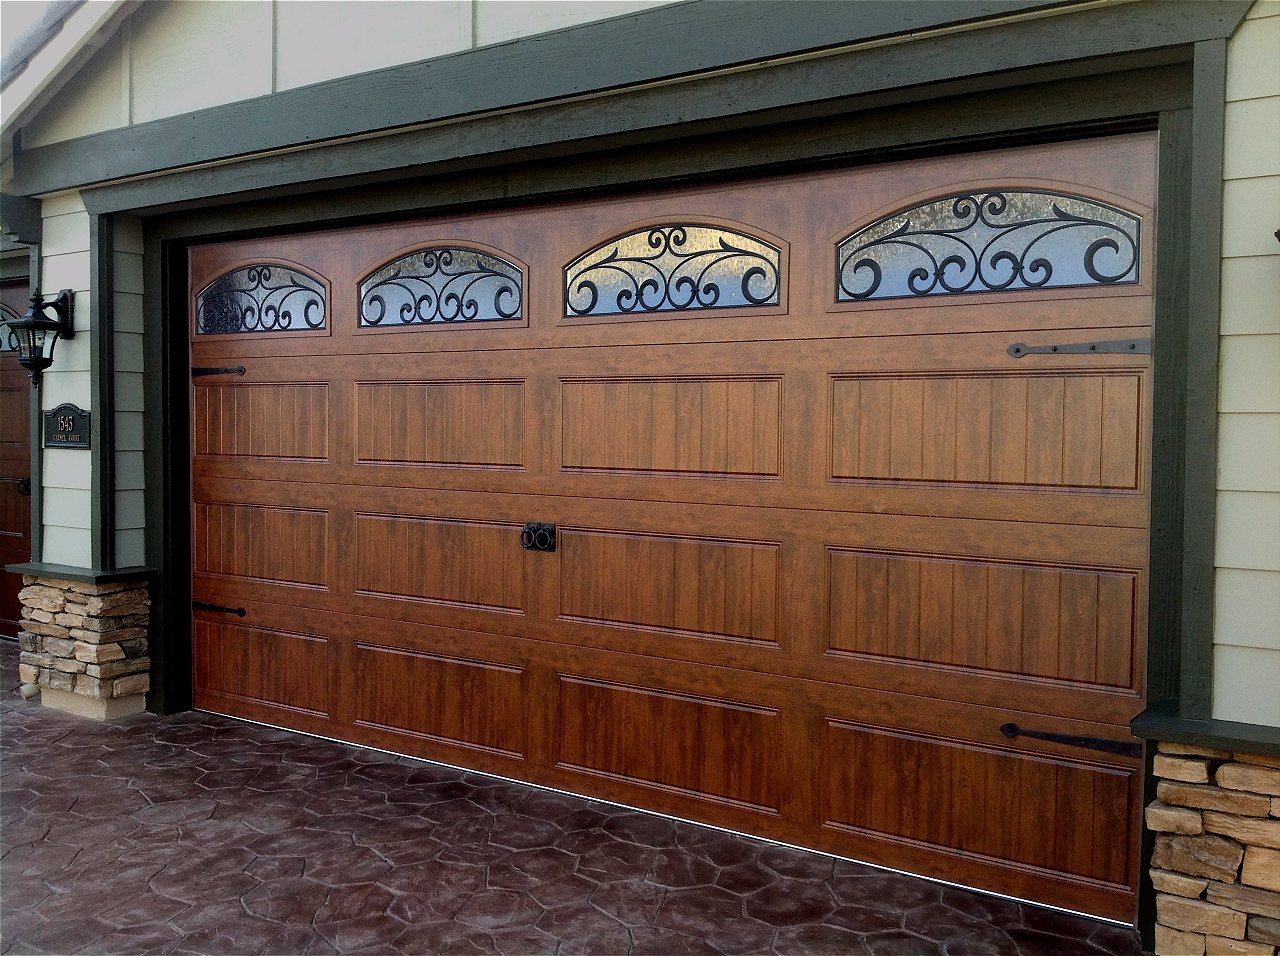 Clopay Gallery Steel Woodgrain Garage Doors On Trac Garage Doors